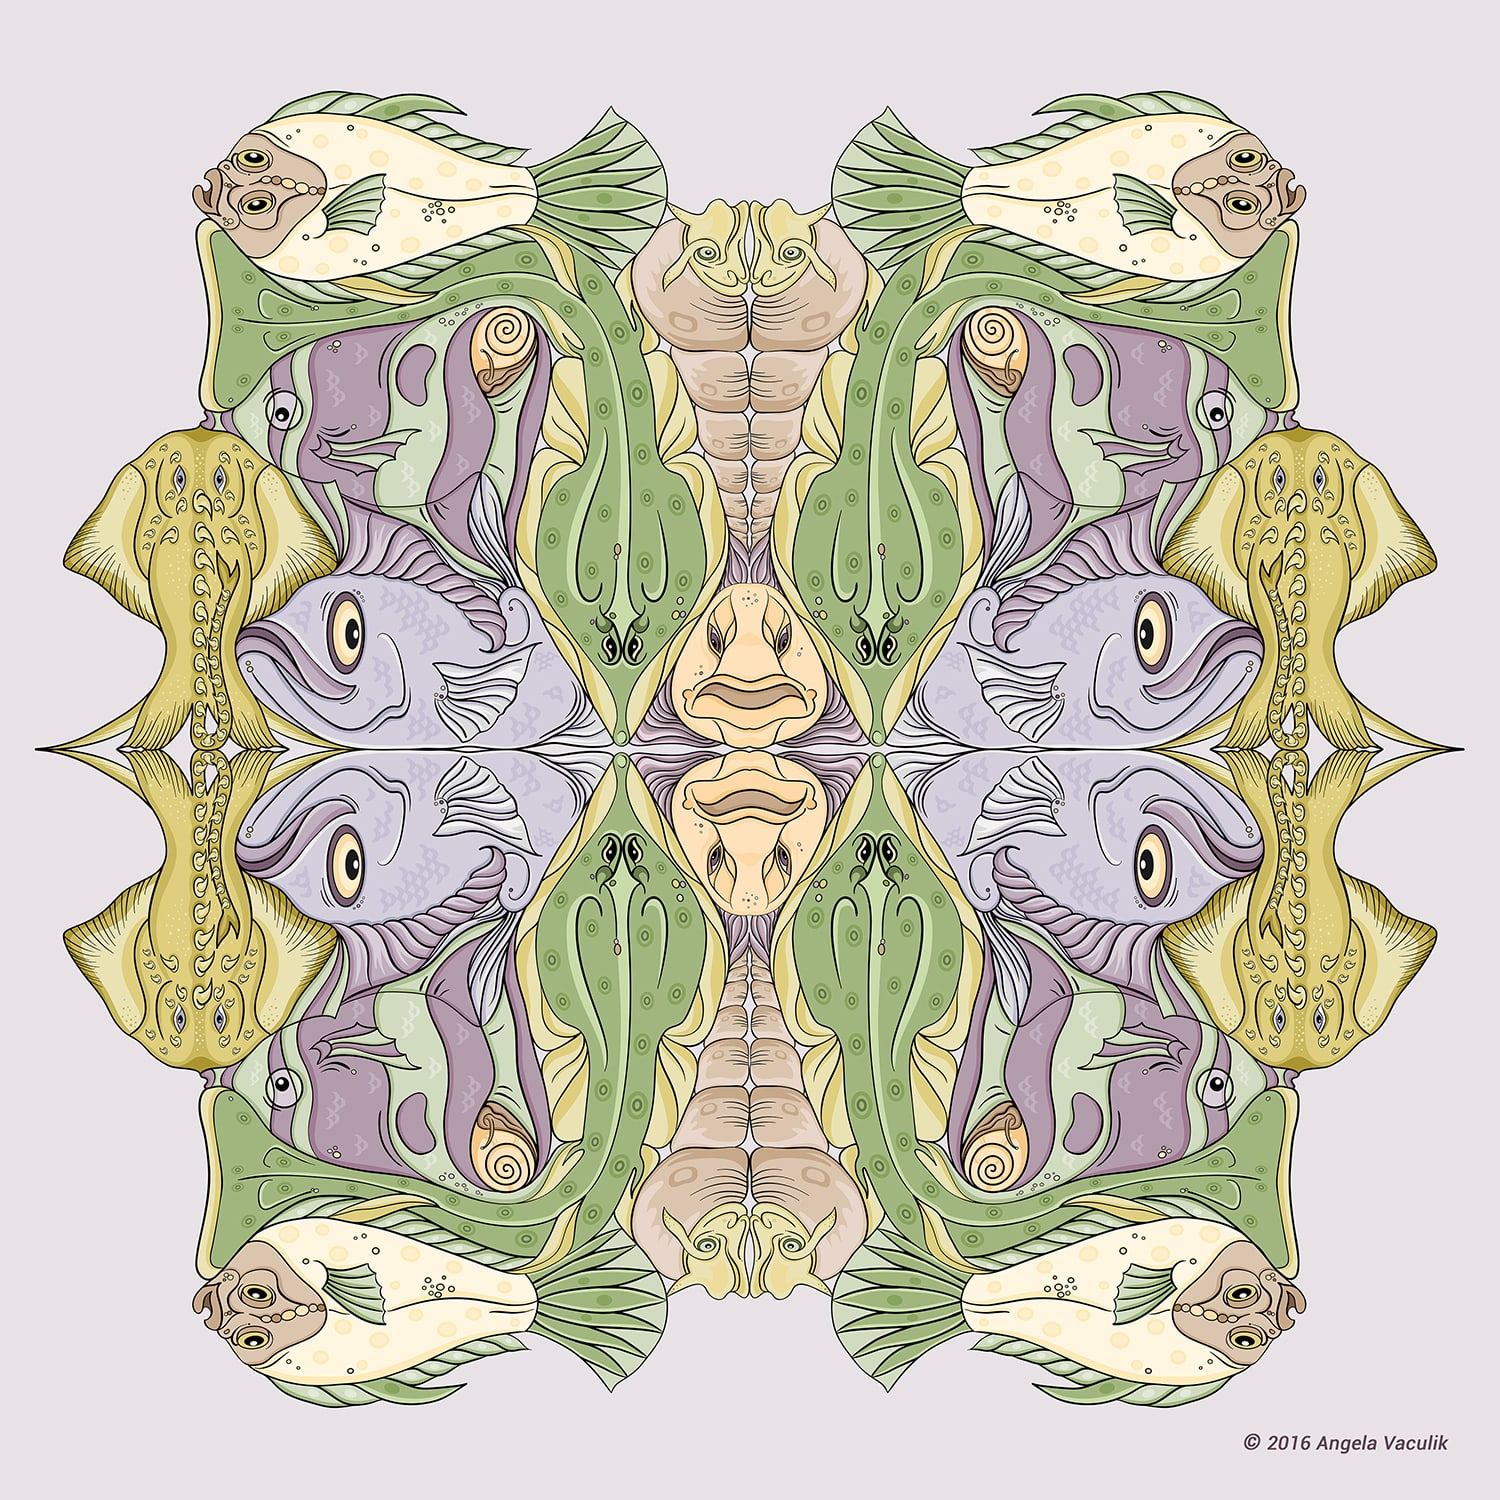 Water Creatures - Patterns